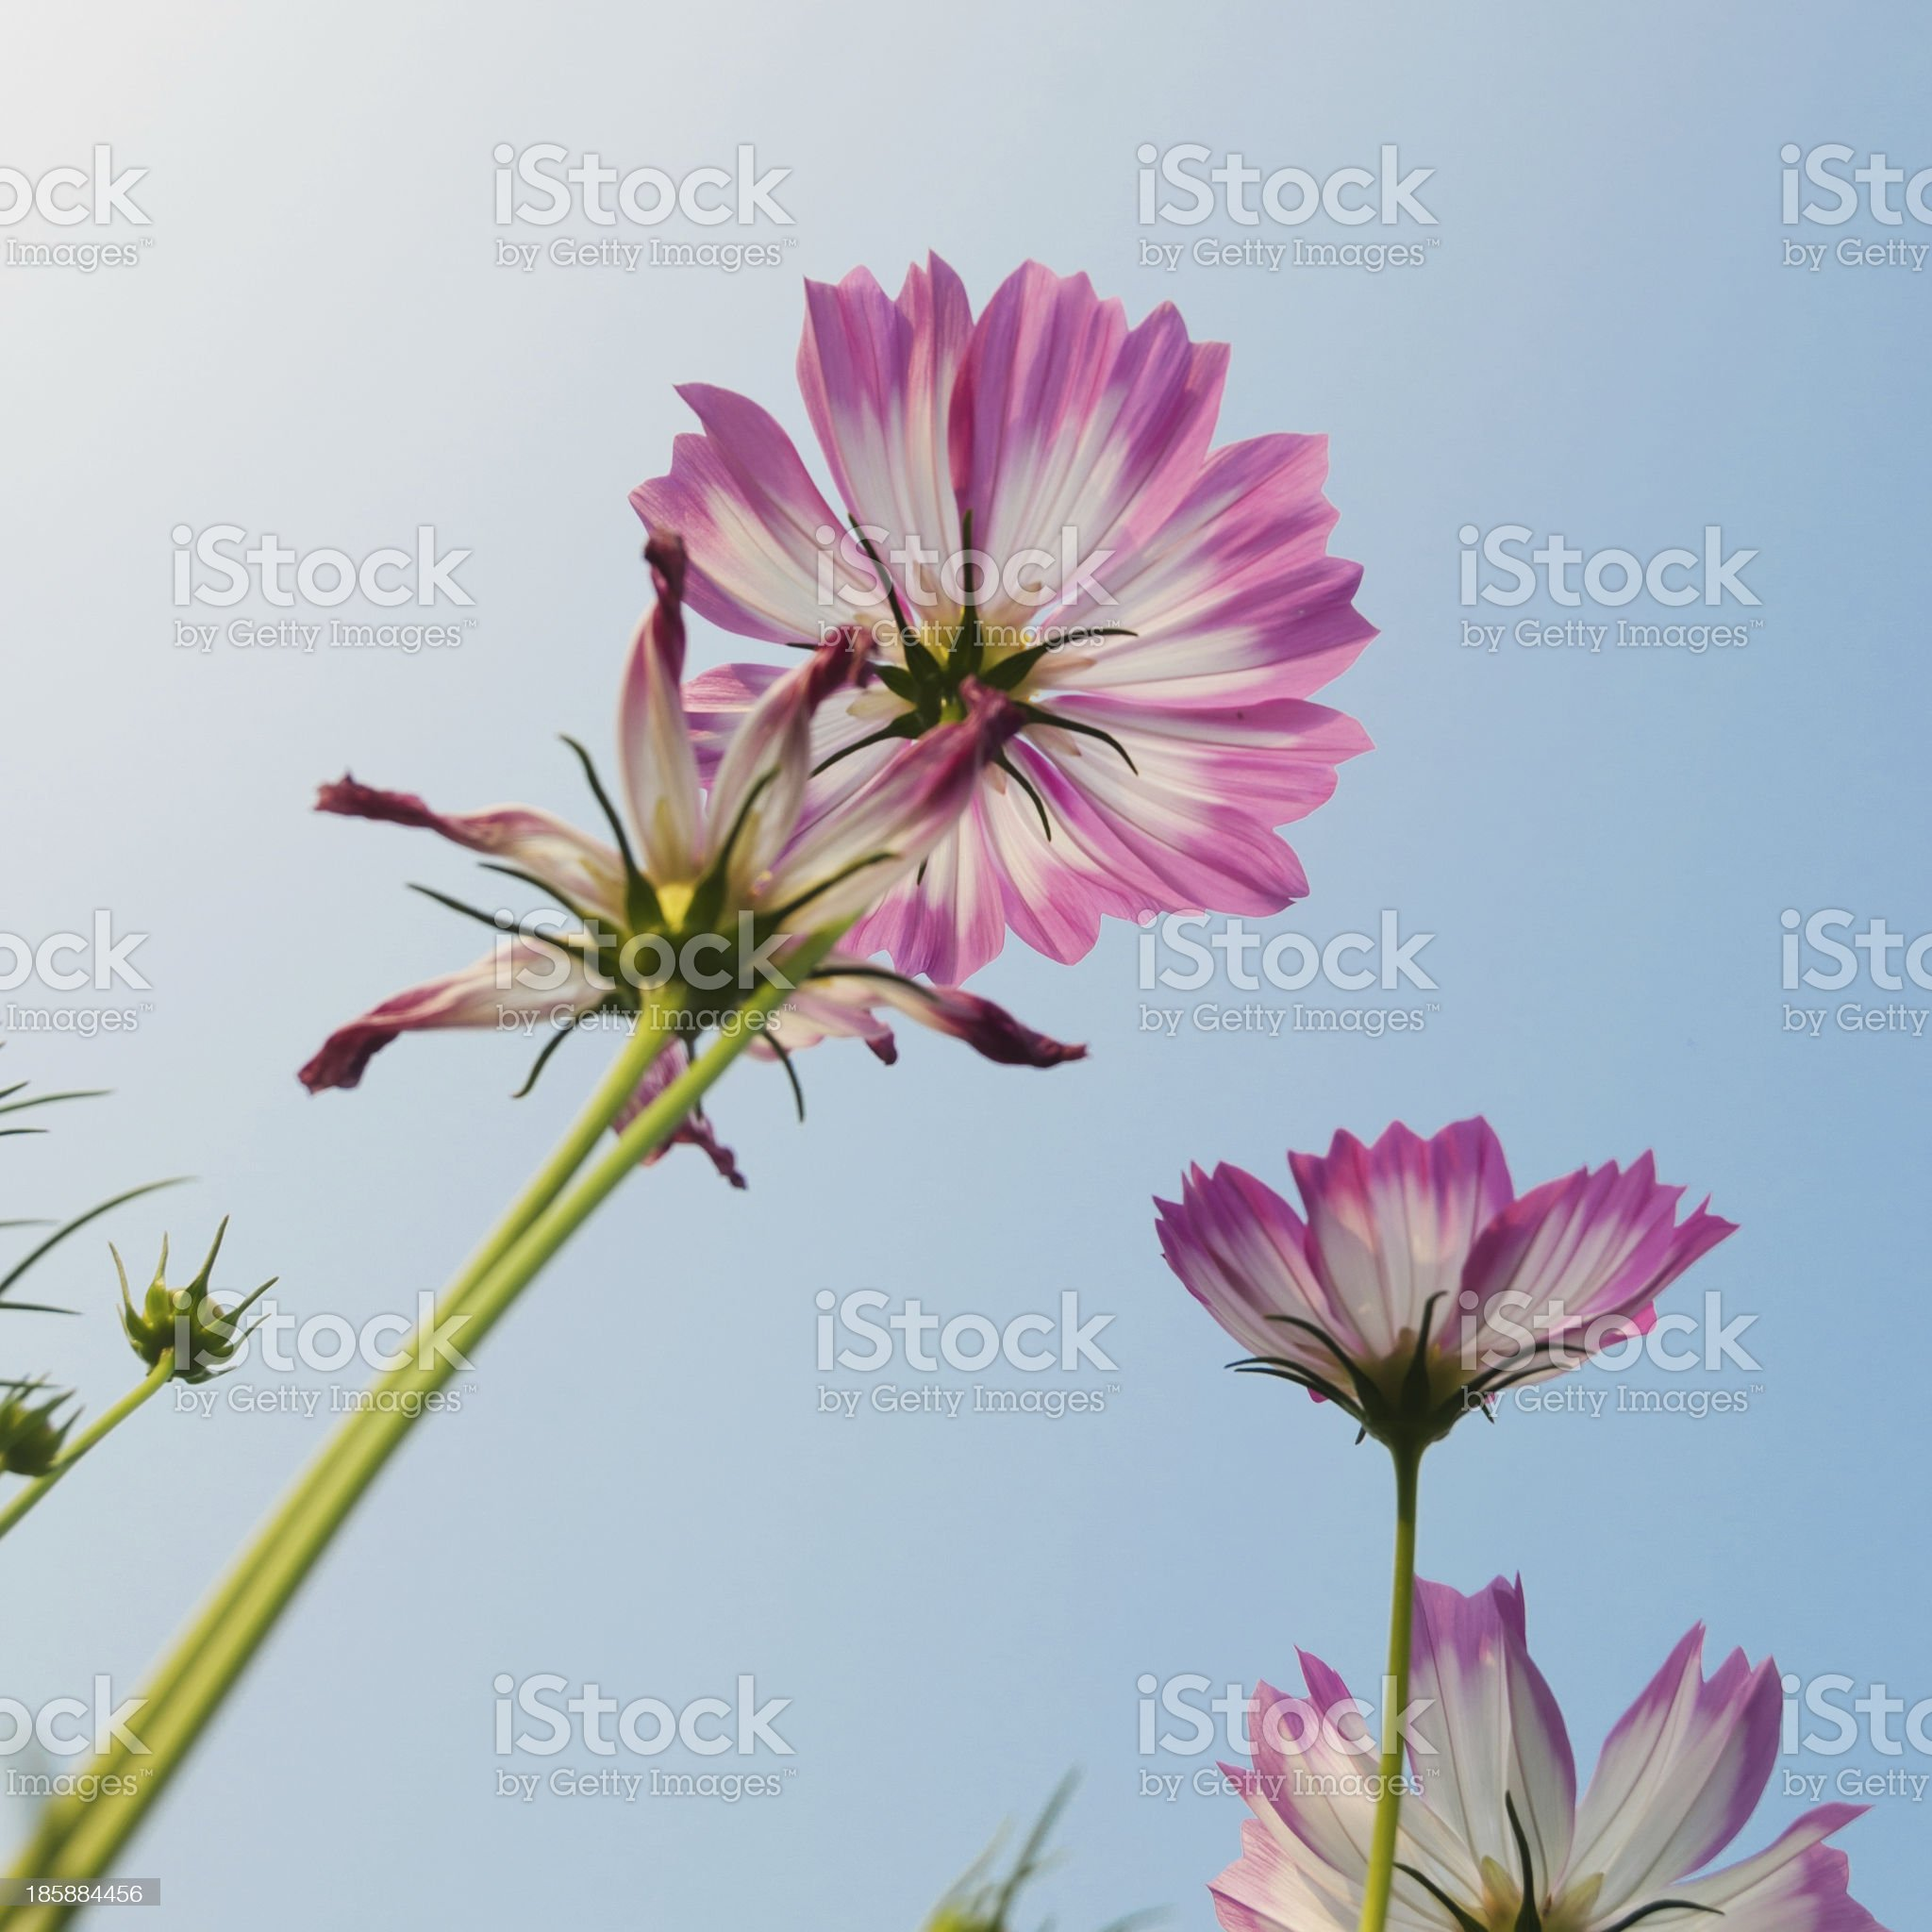 aster royalty-free stock photo